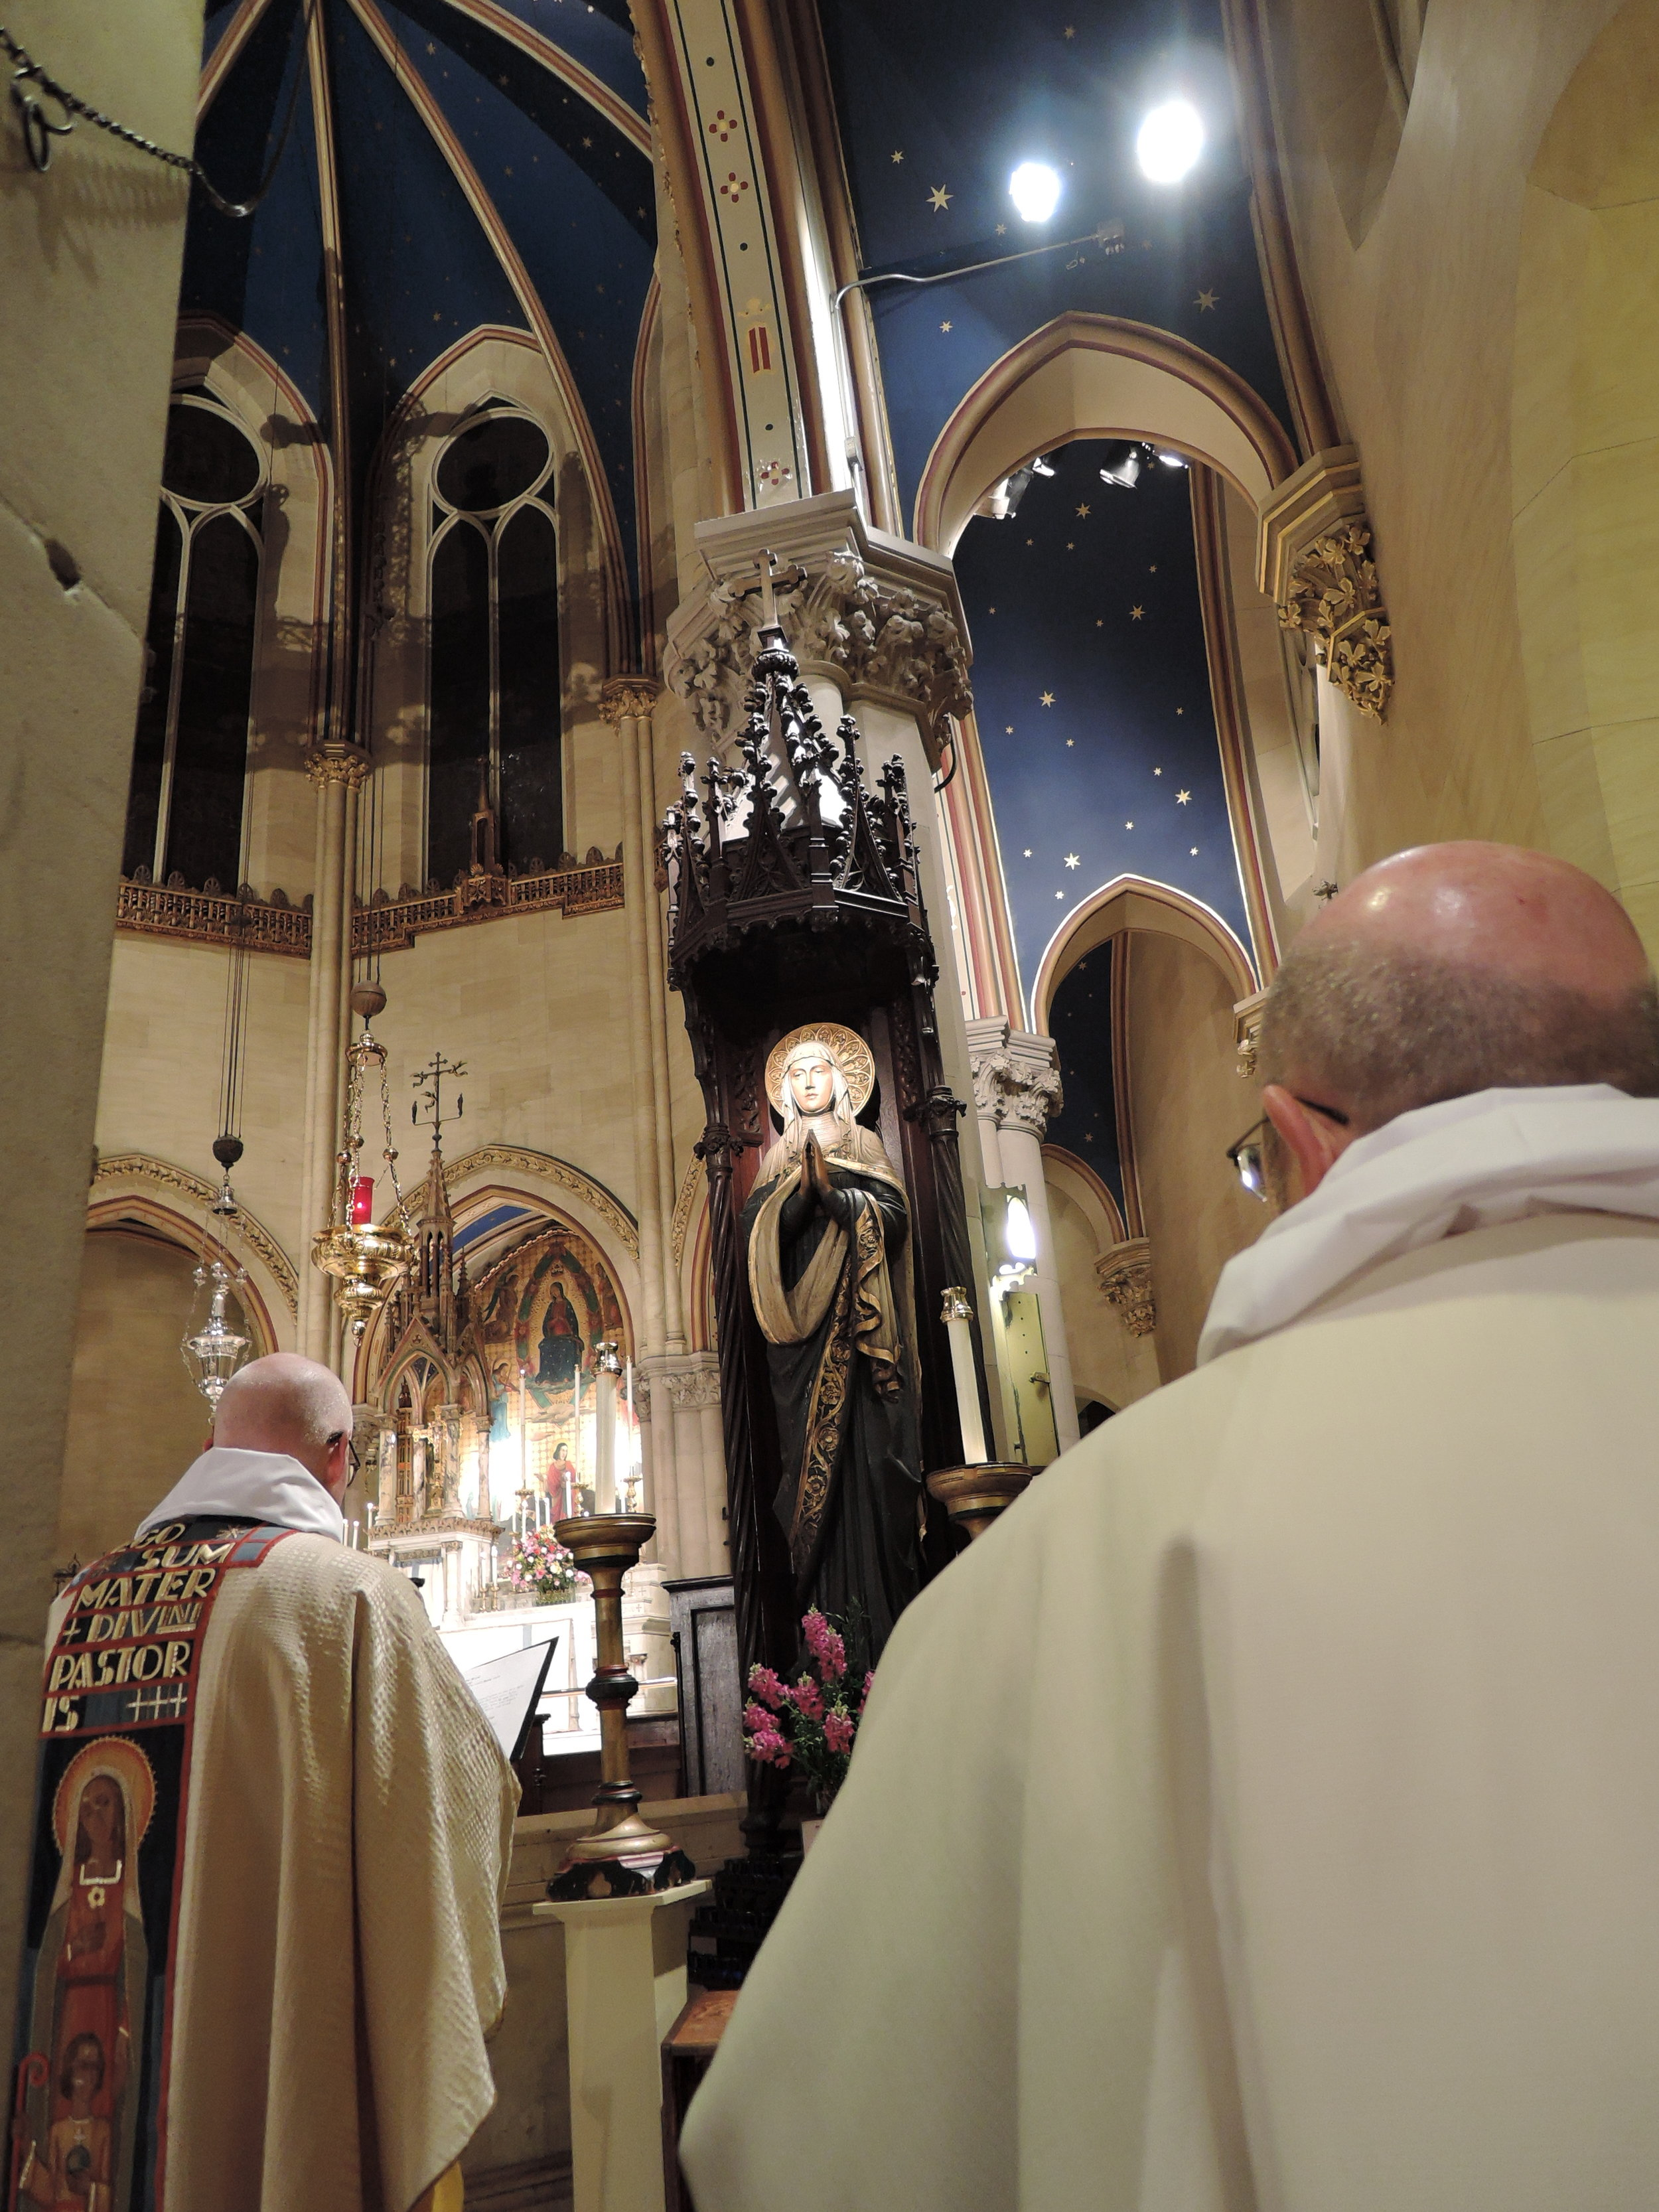 Station at the Shrine of Our Lady at the Solemn Mass